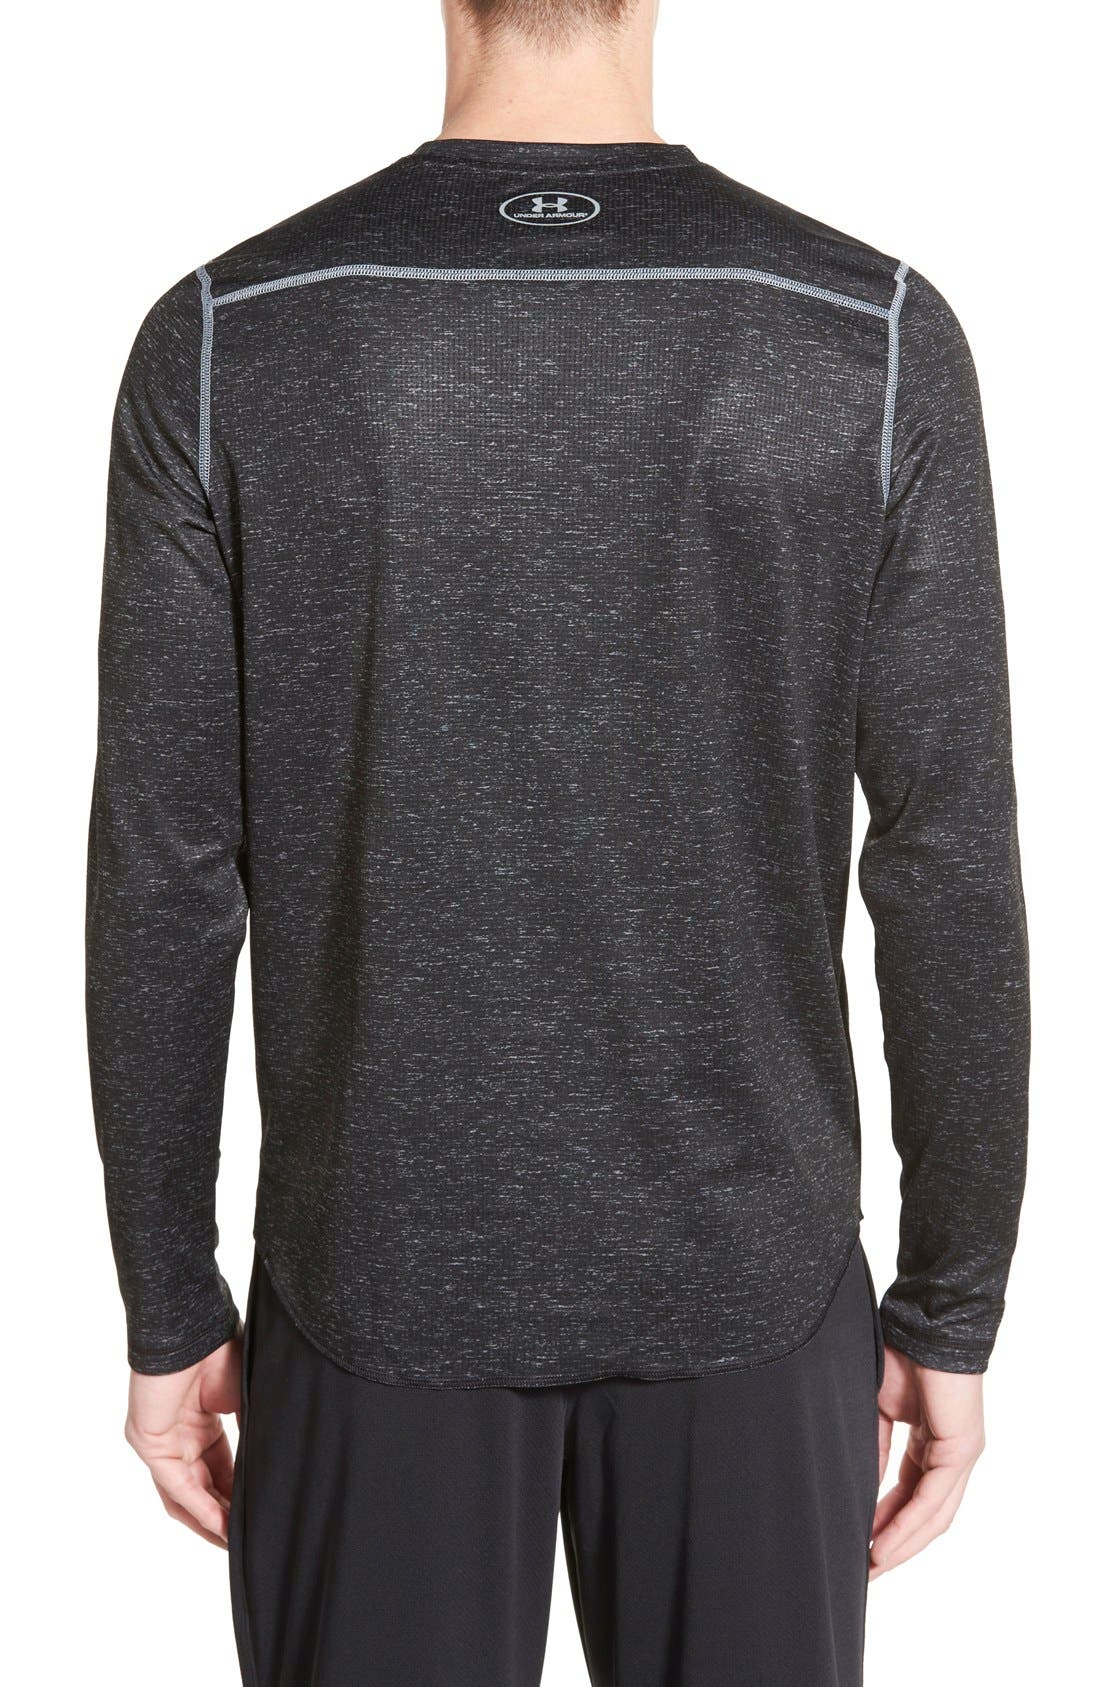 Alternate Image 2  - Under Armour Tech™ Long Sleeve Waffle Knit T-Shirt